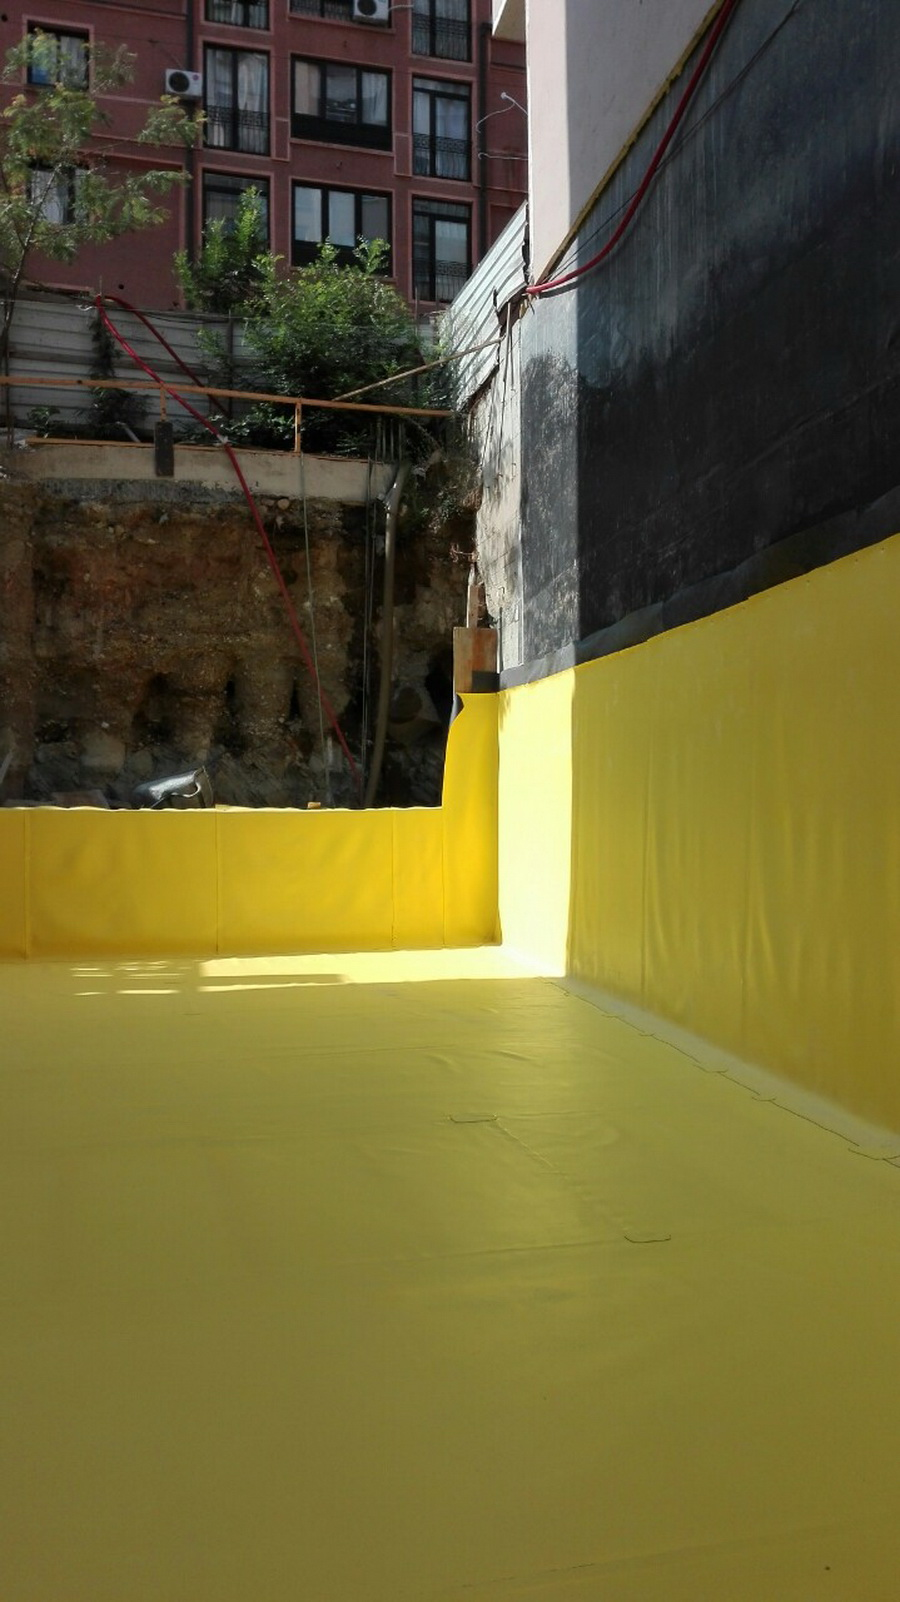 Waterproofing works Blagoj Mehandziski